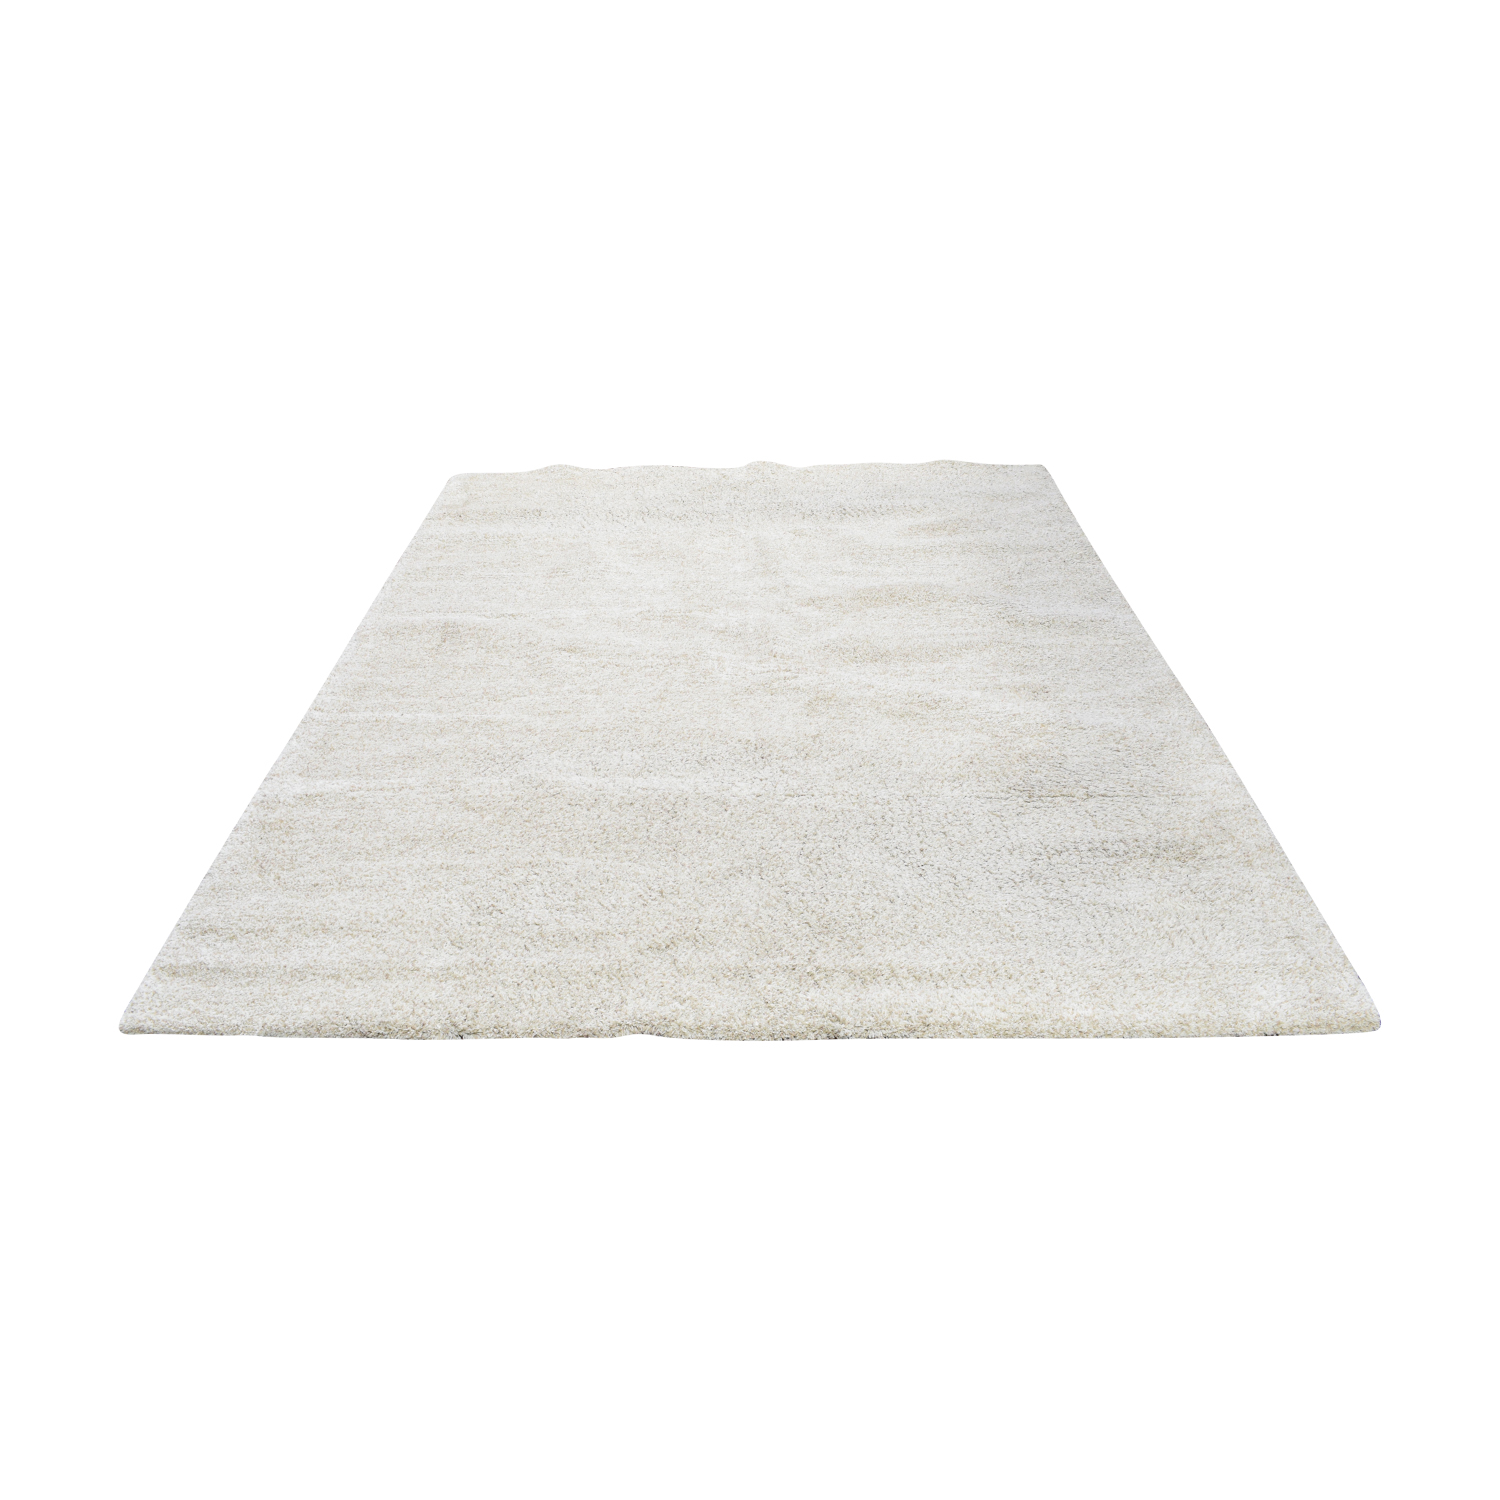 KAS Rugs KAS Bliss Heather Shag Area Rug ct